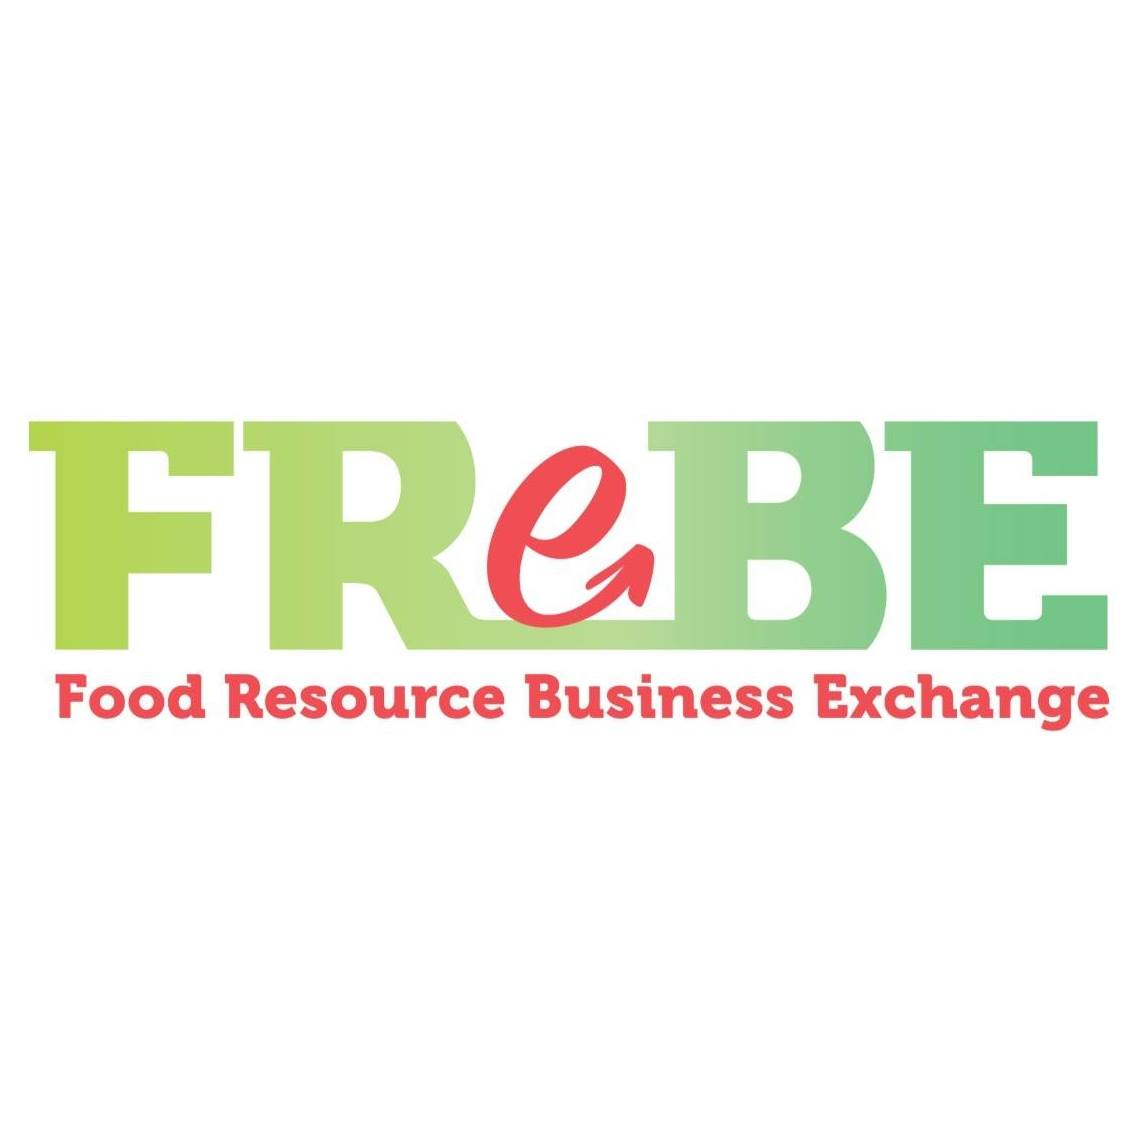 Chewsi is excited to be attending the FReBE event at @HopeandMain November 7th from 12-3pm. Stop by our table to learn more about how Chewsi can help industry professionals save at the dentist! #FReBE #makefoodyourbusiness #entrepreneurs https://t.co/TdO2FvzY6v